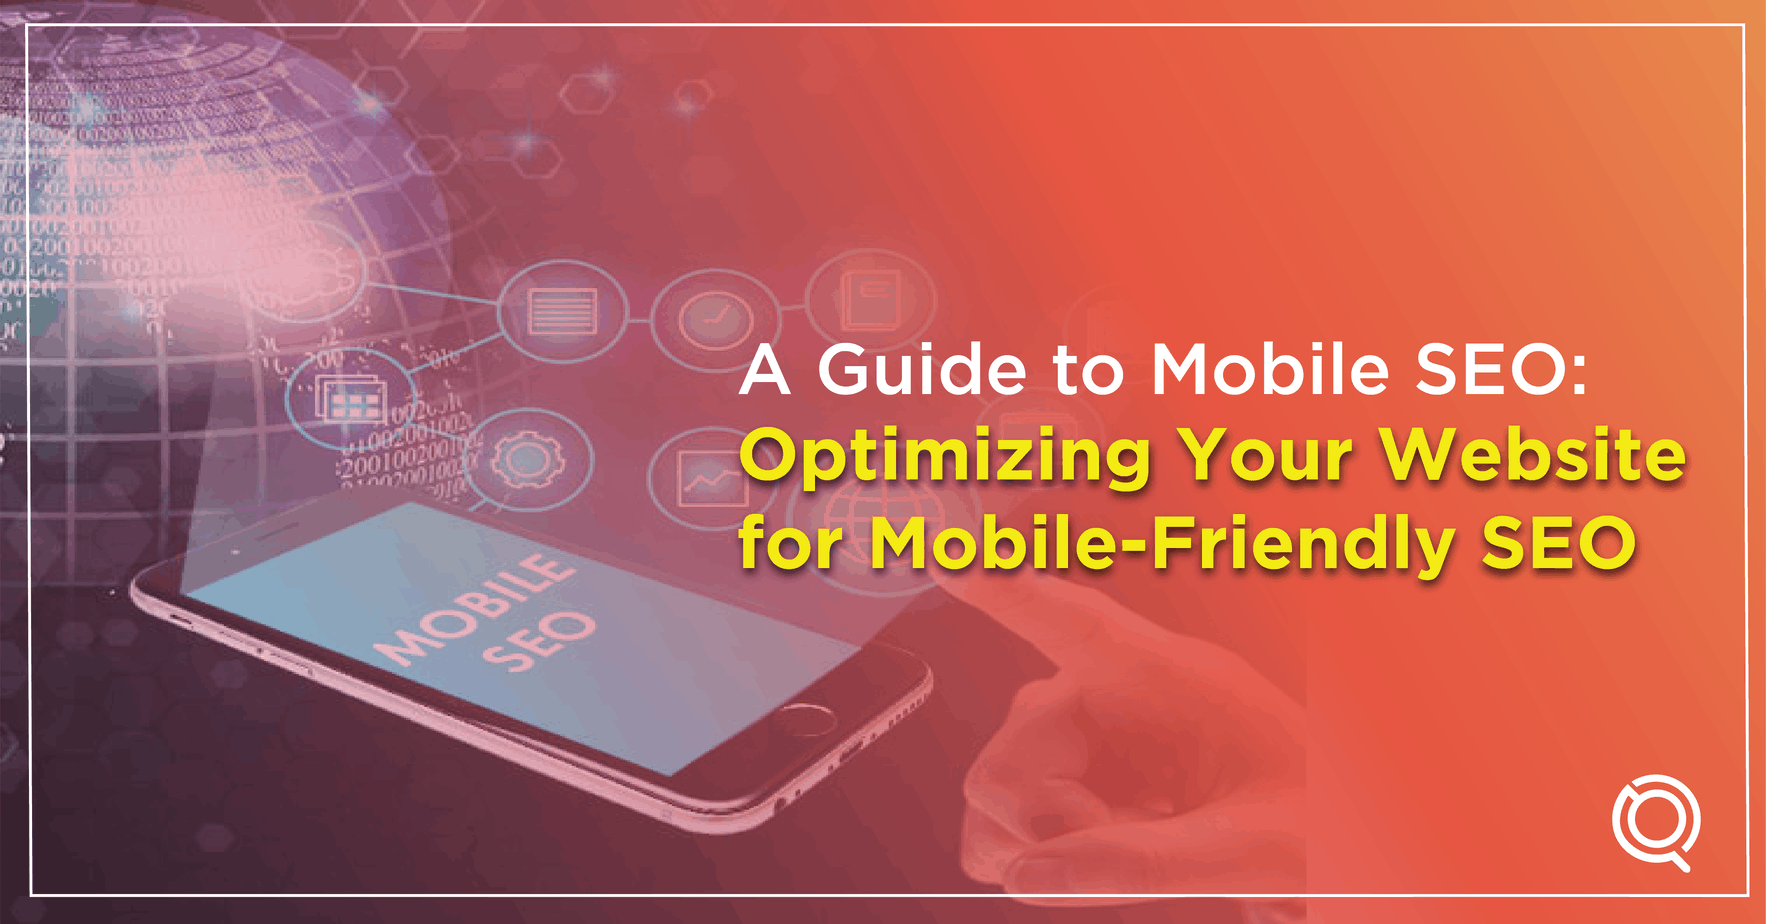 A Guide to Mobile SEO: Optimizing Your Website for Mobile-Friendly SEO - One Search pro Digital marketing Agency Malaysia